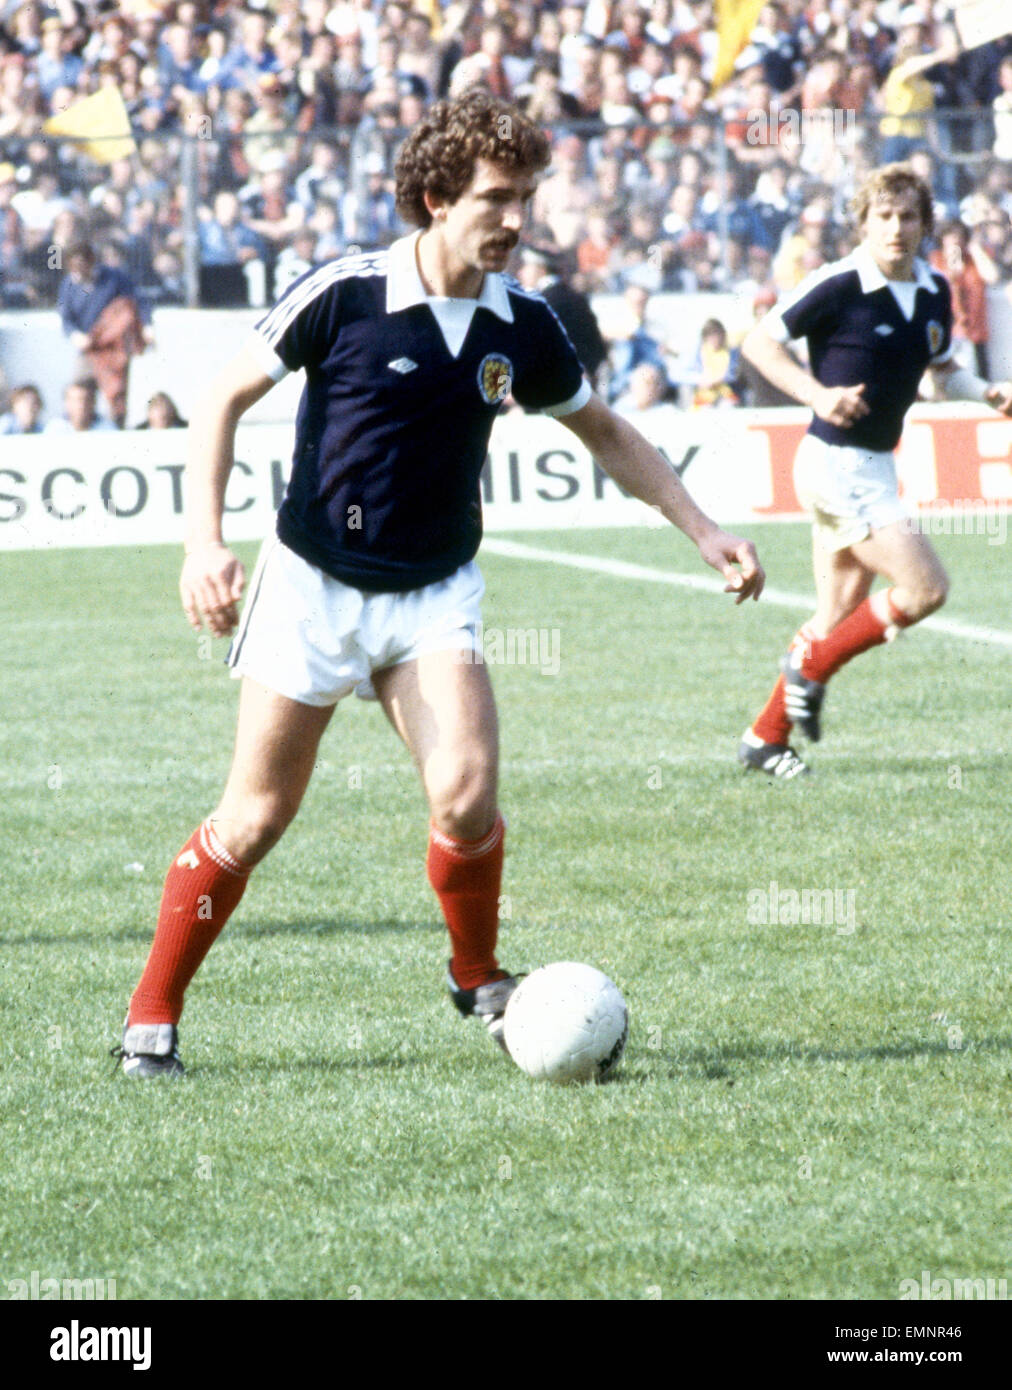 Scotland's Graeme Souness seen here in action against England. 20th May 1978 - Stock Image